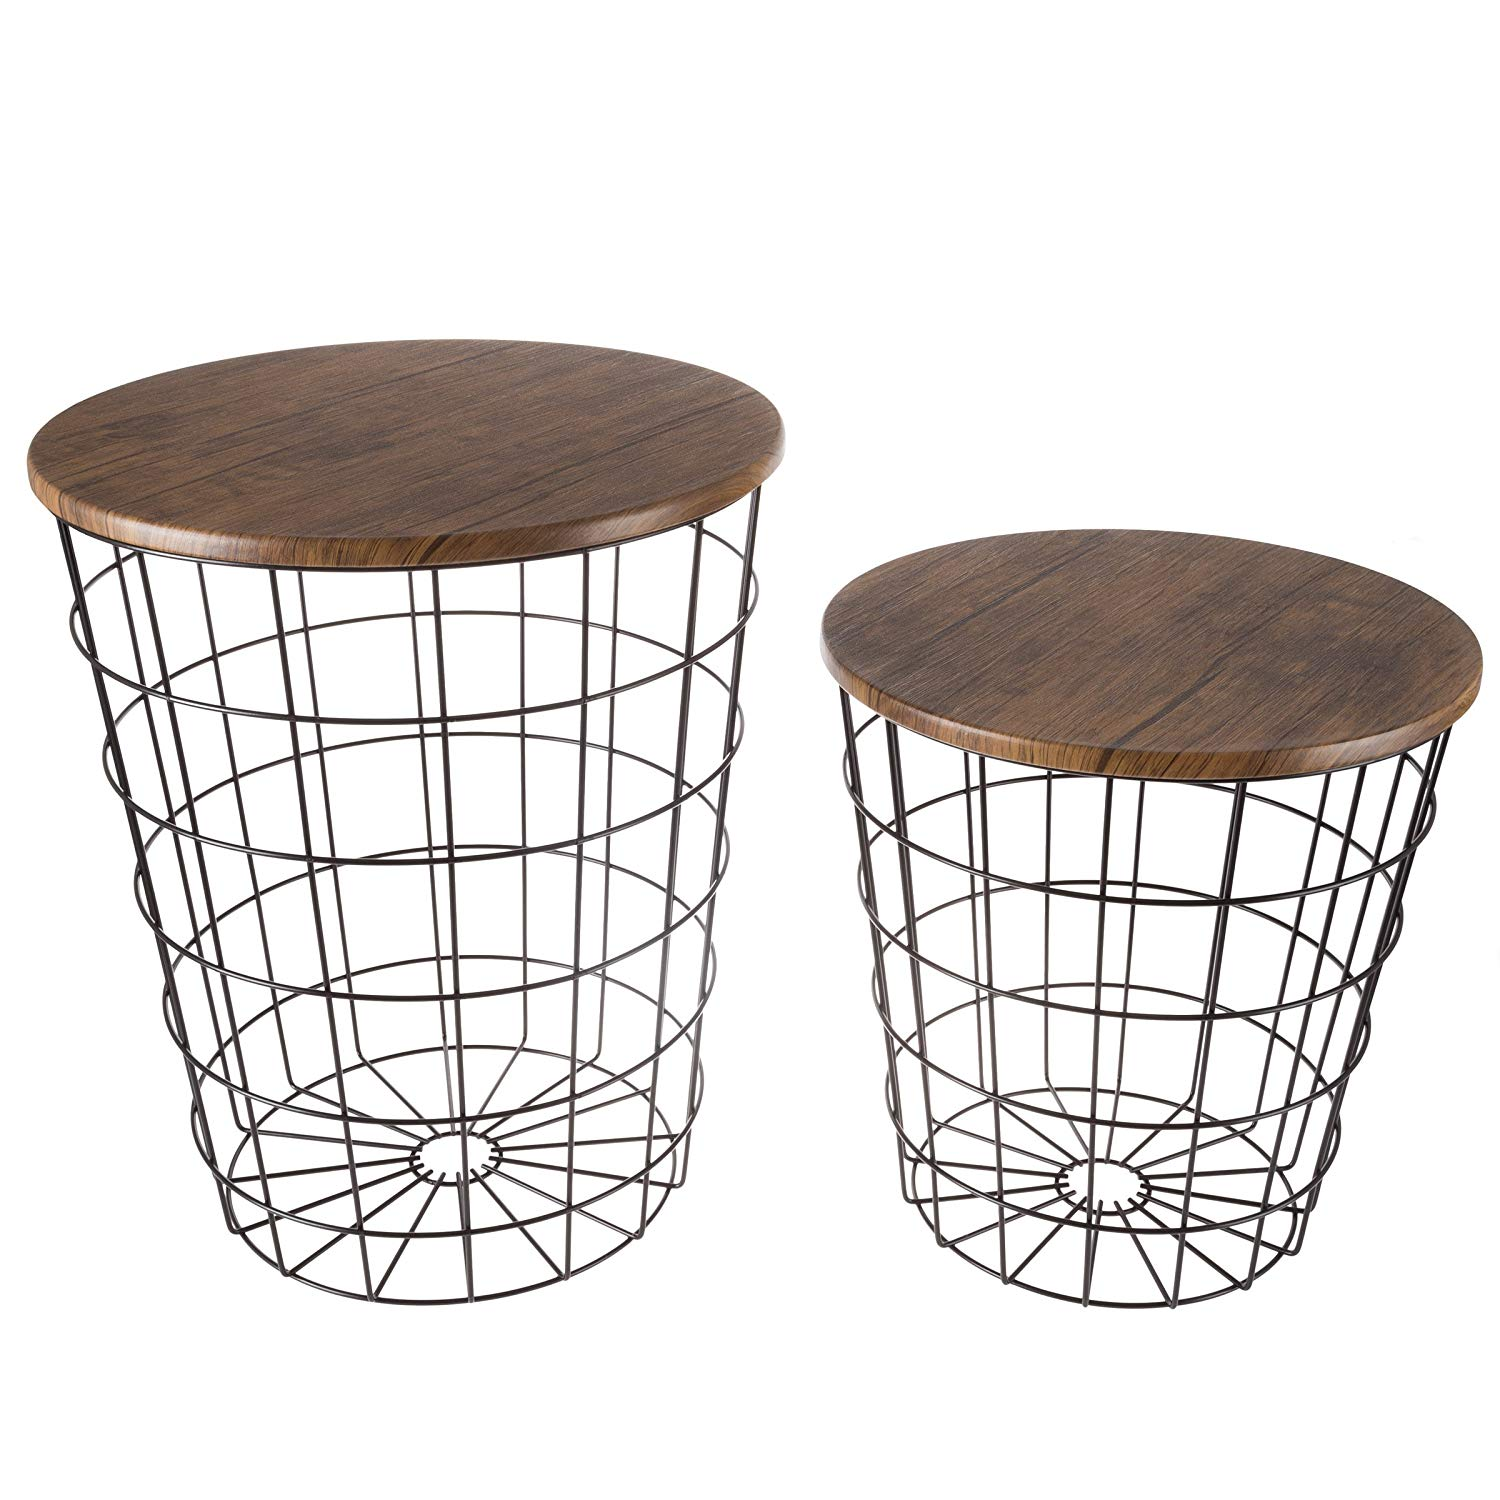 lavish home endtbl set nesting end storage accent side tables round convertible metal basket wood veneer top black kitchen little white table target small lacquer red lamps for